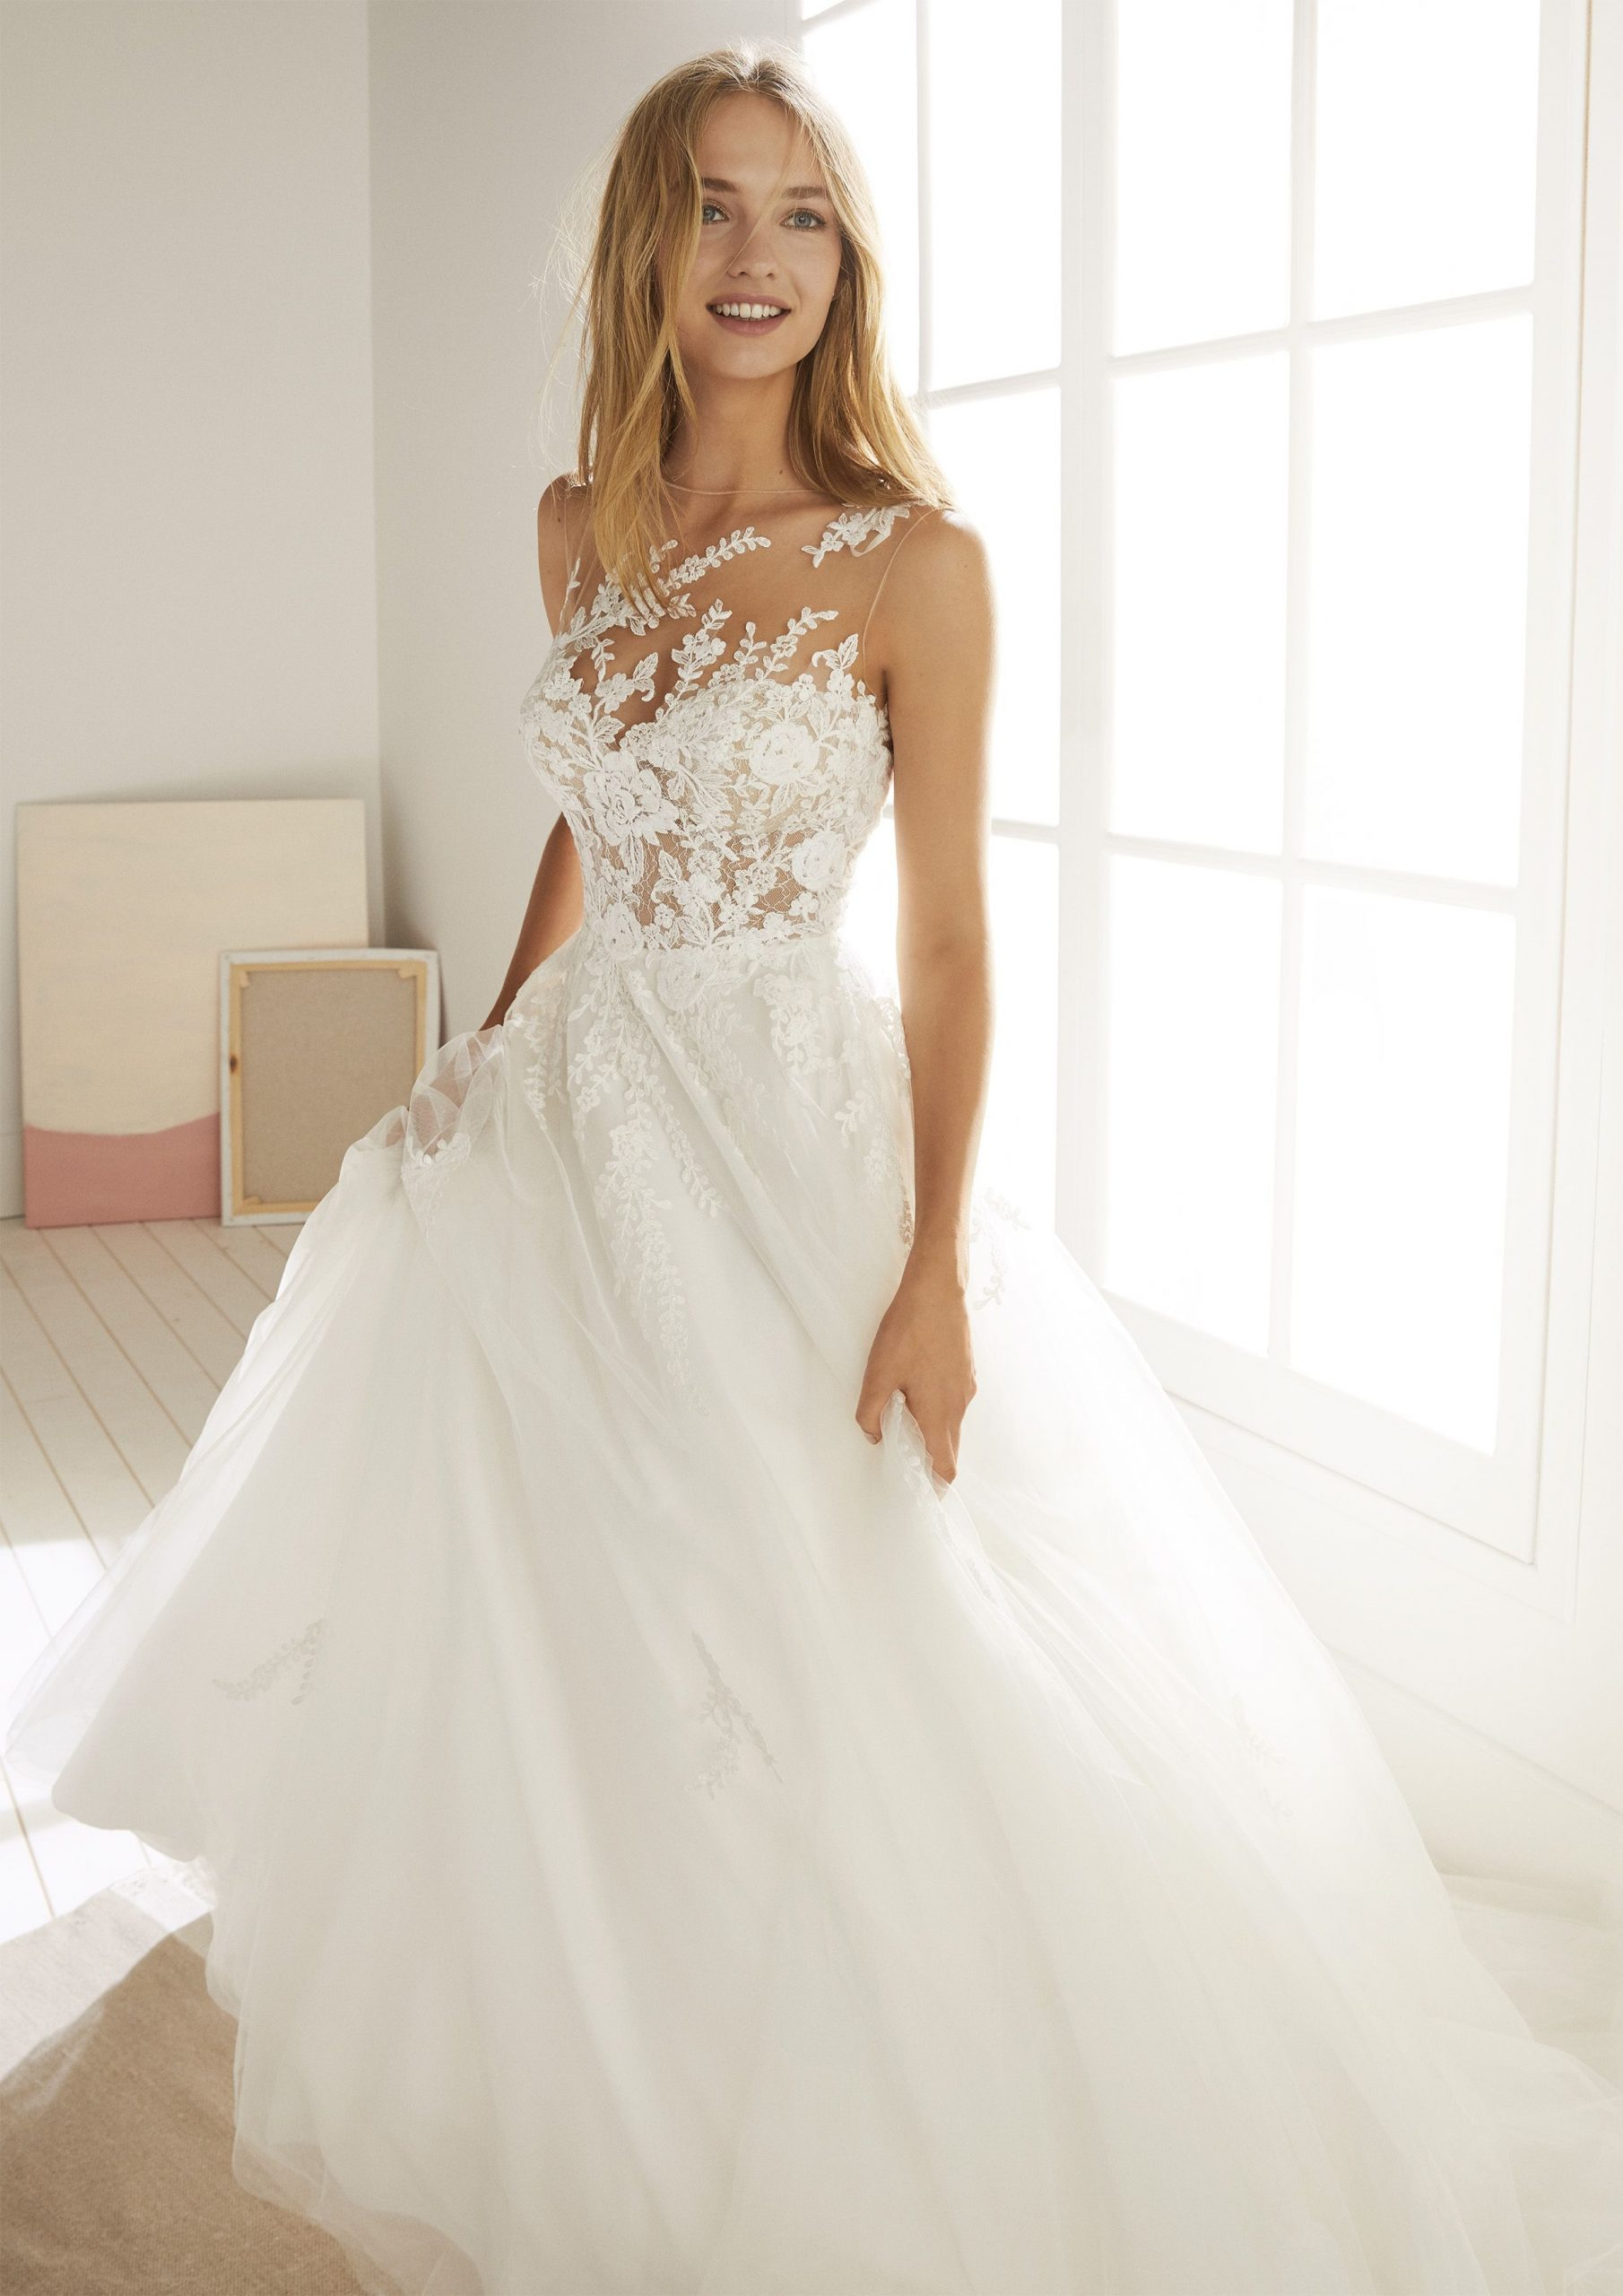 Oropesa – White Onepronovias Fashion Group - Presented